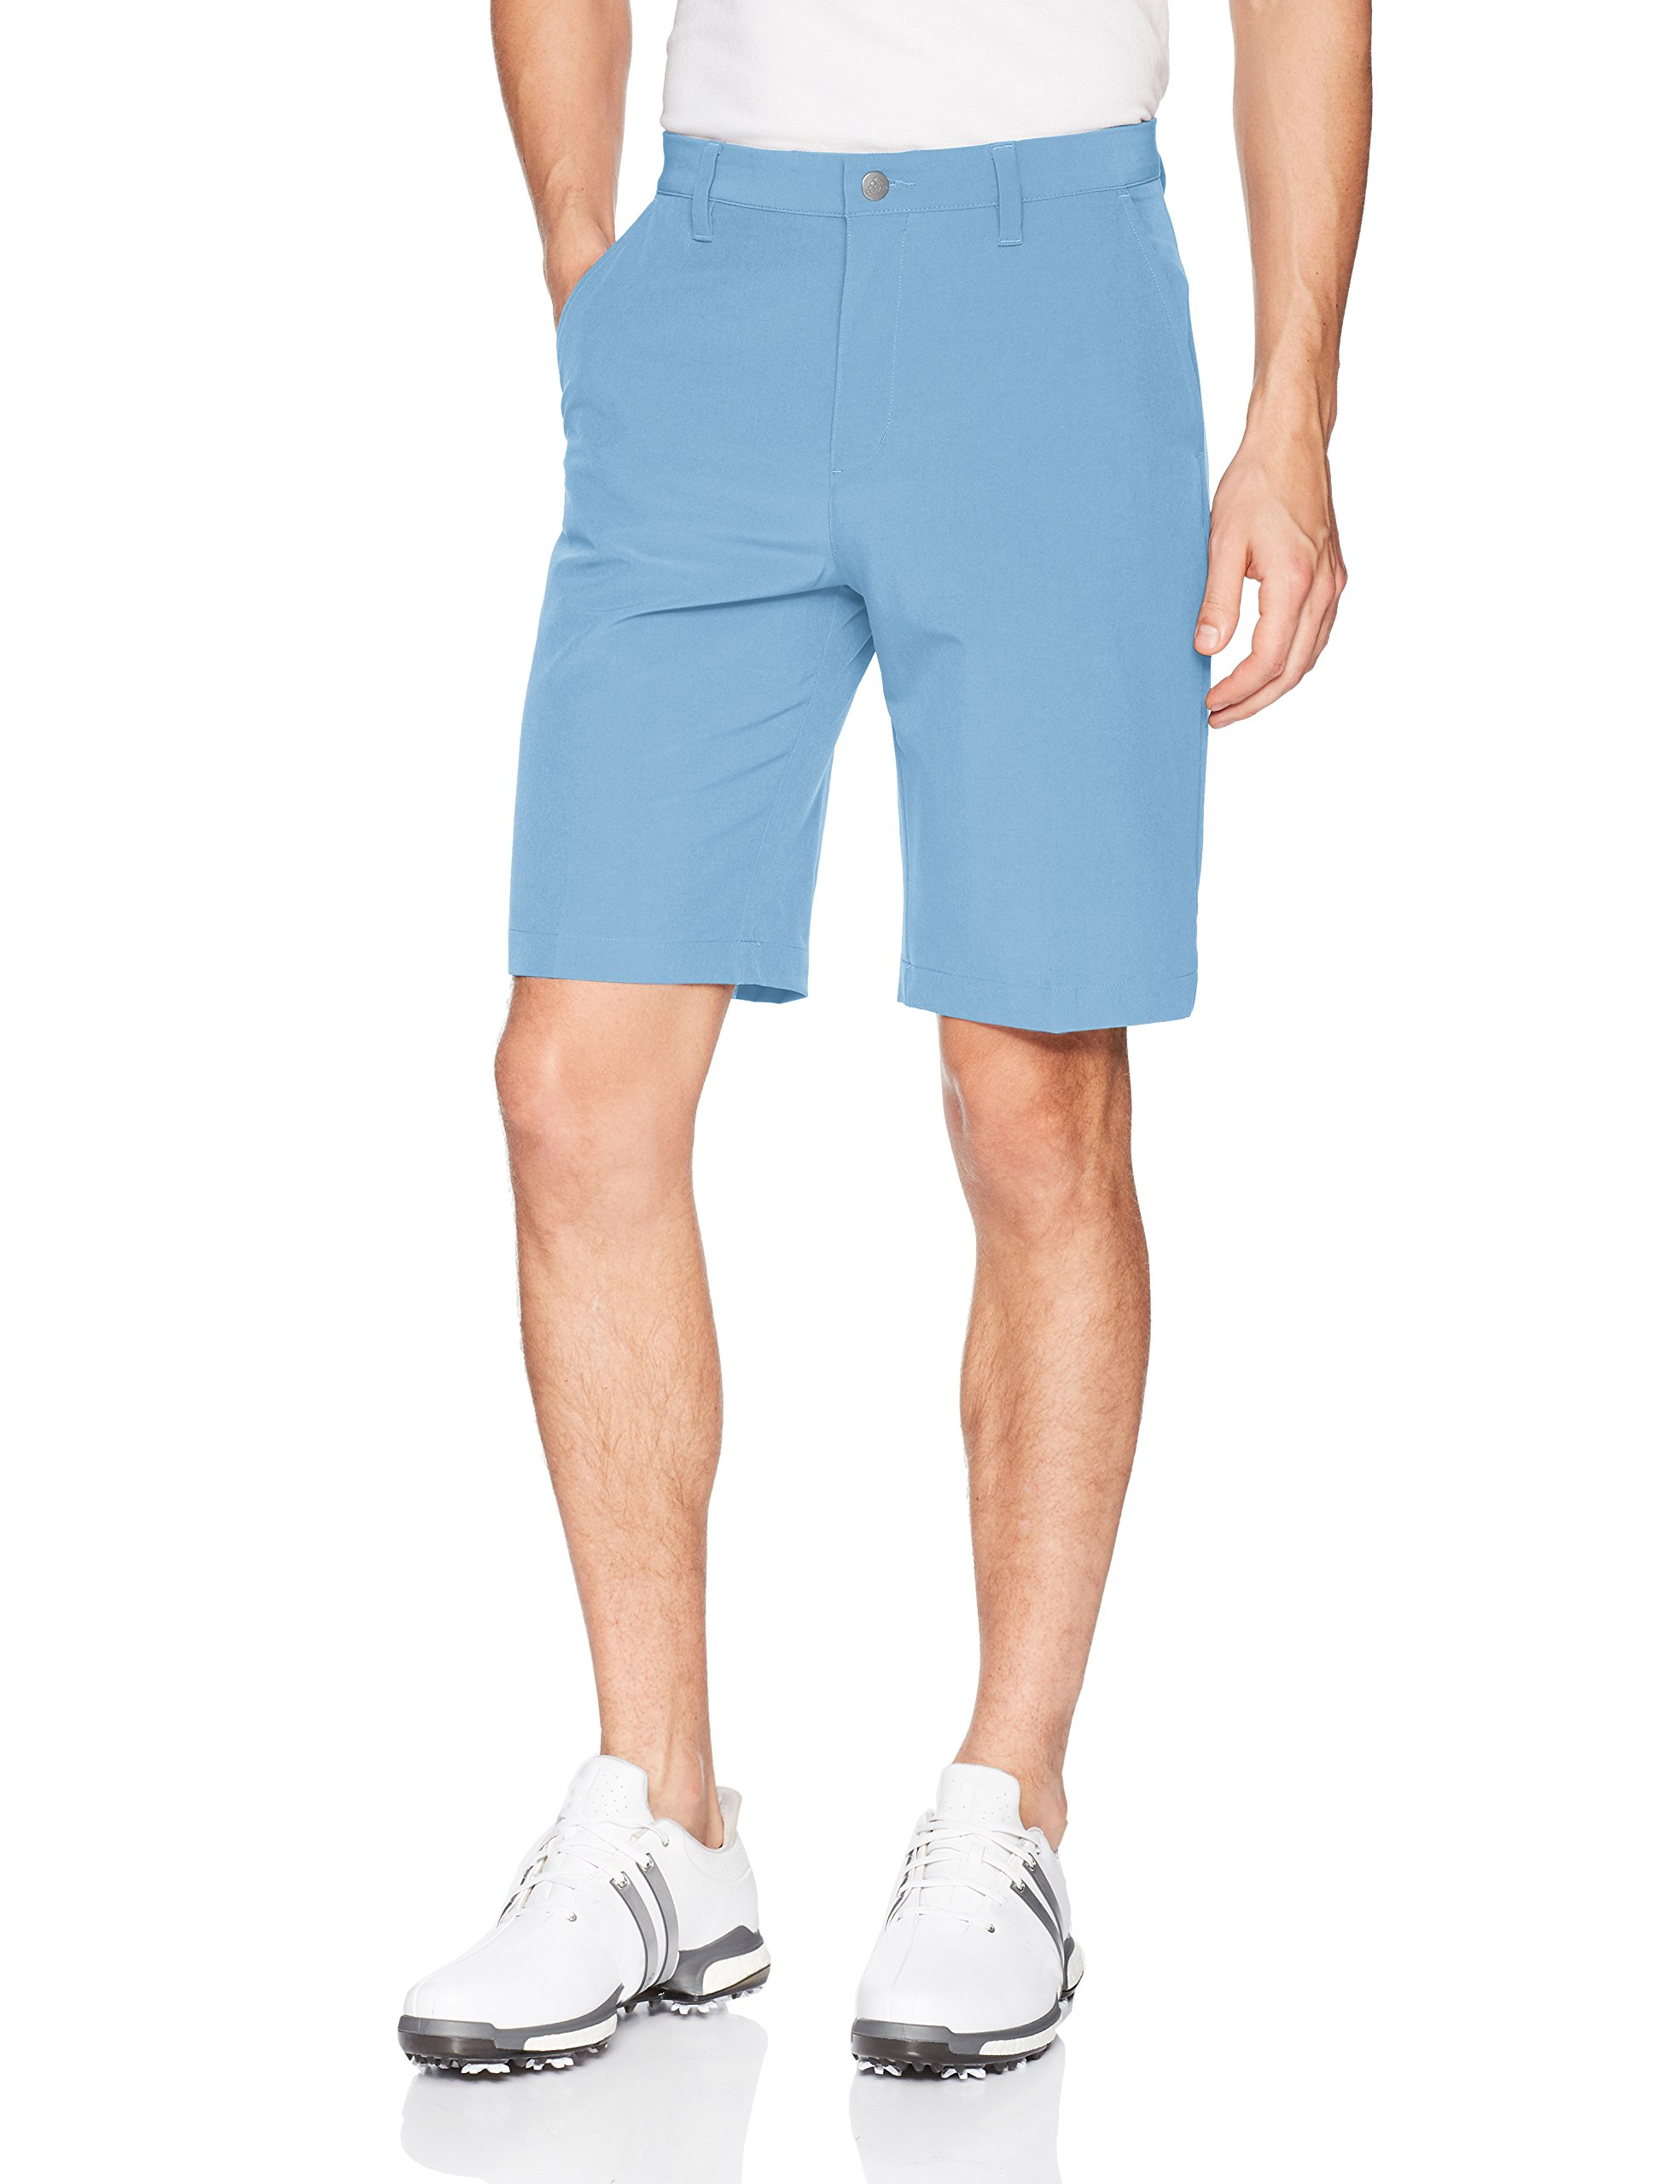 adidas Golf Men's Ultimate 365 Short, Ash Blue s, 35'' by adidas